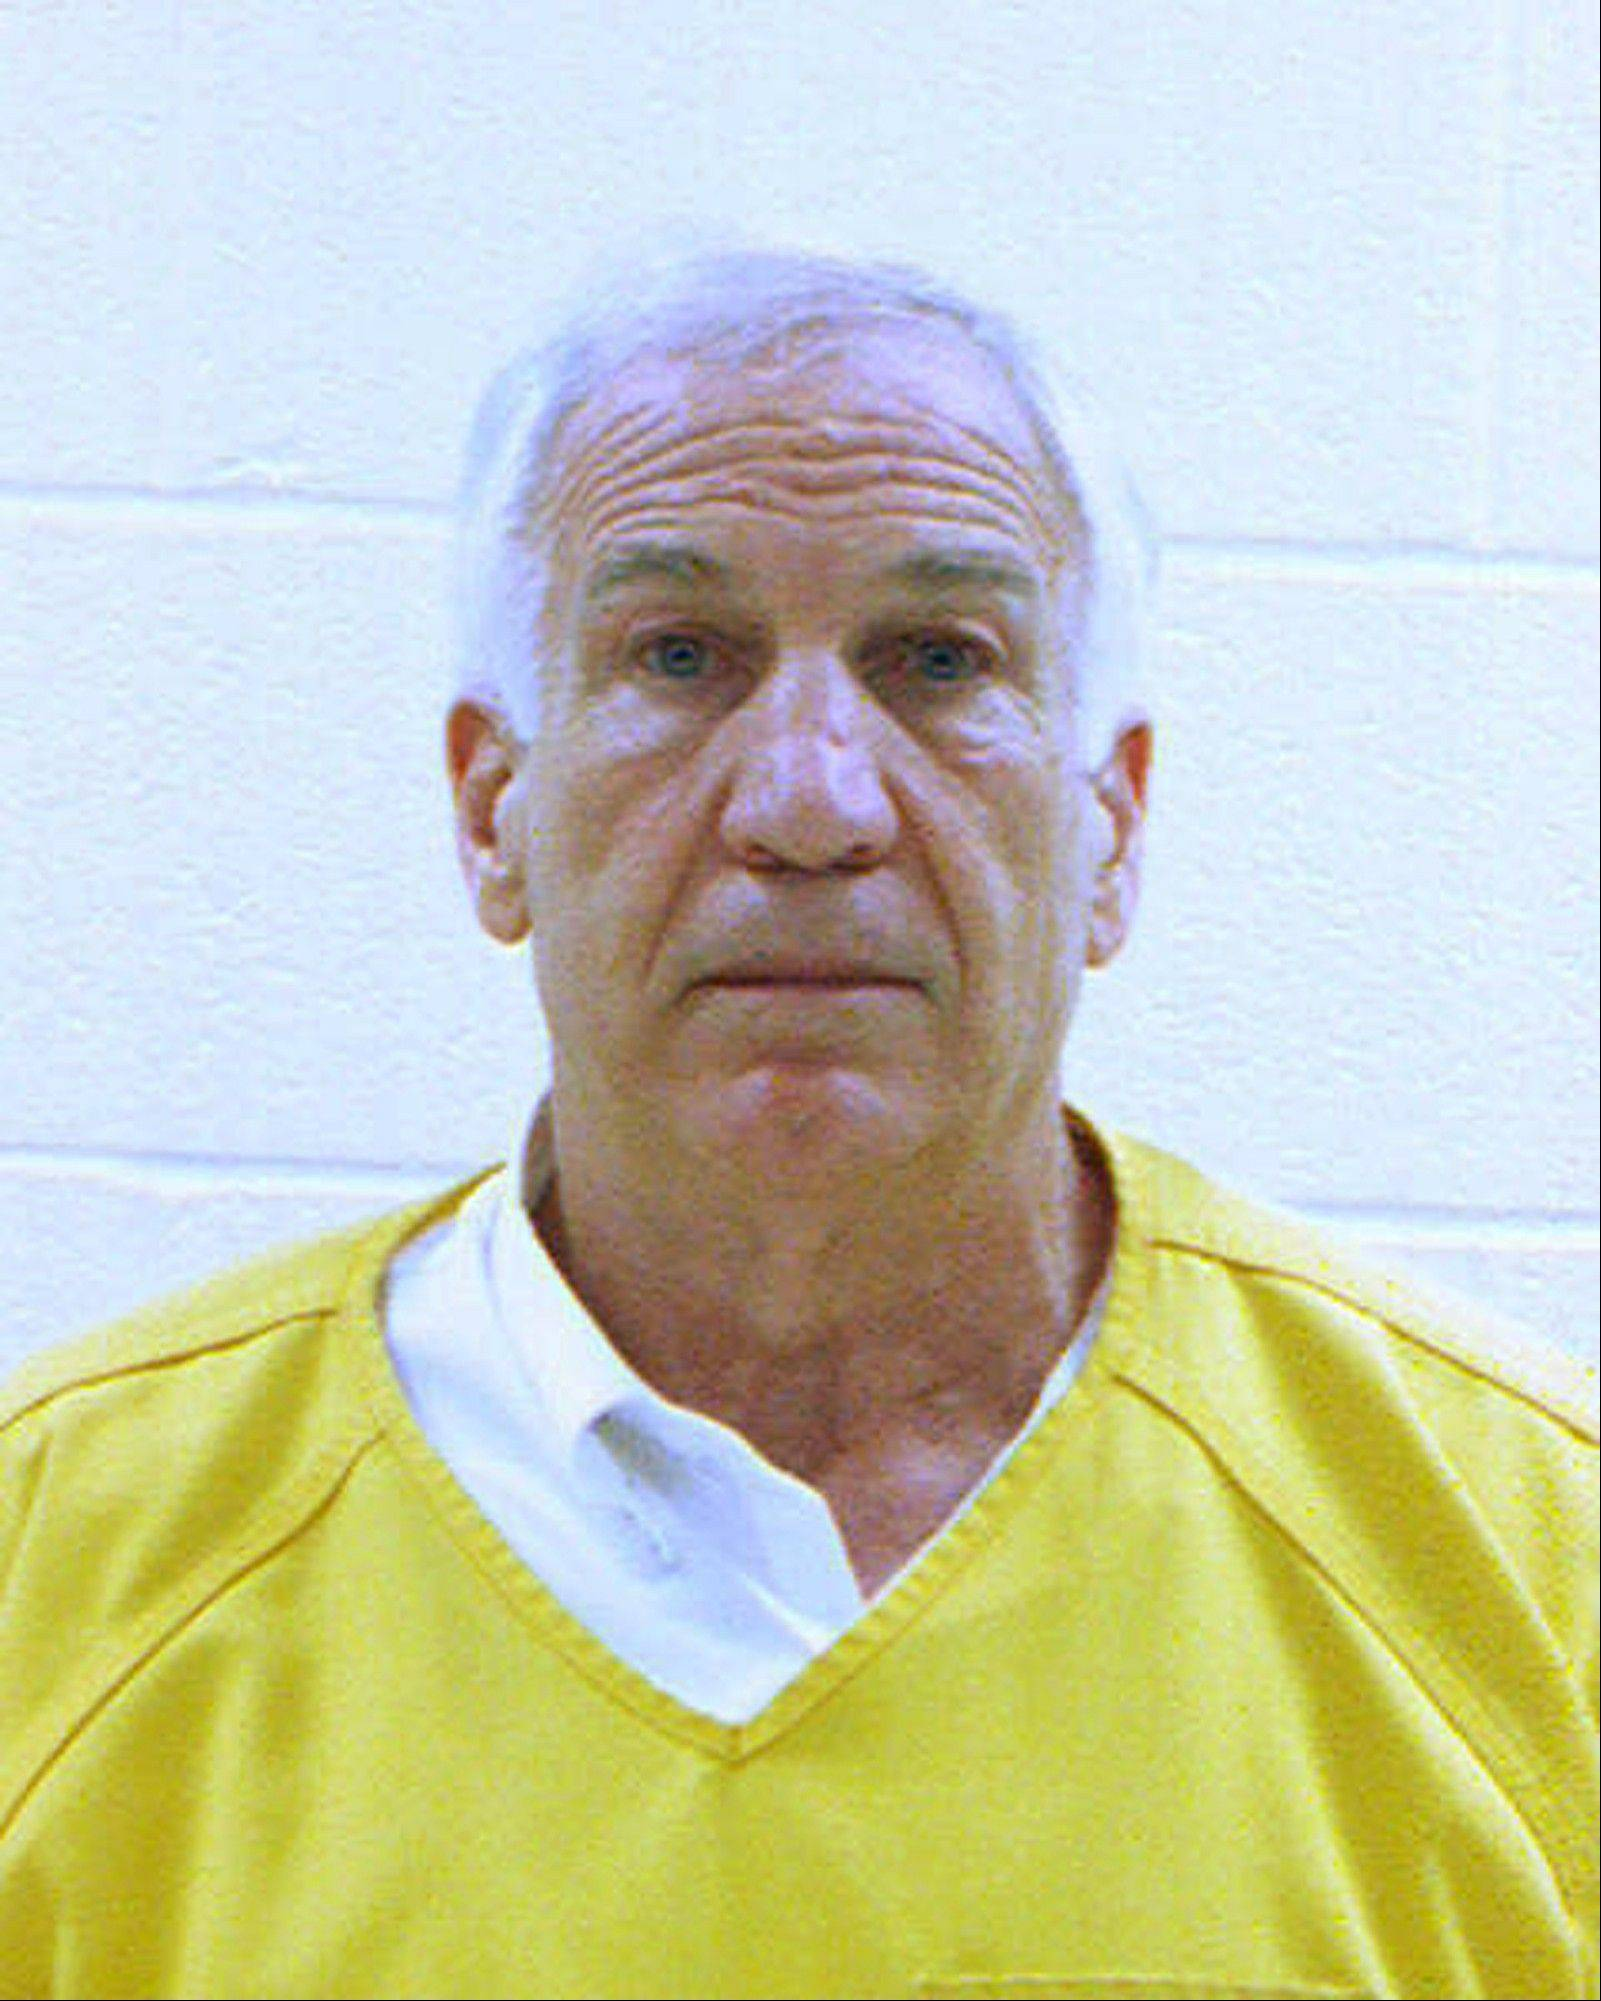 Former Penn State University assistant football coach Jerry Sandusky was convicted on Friday of sexually assaulting 10 boys over 15 years, accusations that had sent shock waves through the college campus known as Happy Valley and led to the firing of Penn State's beloved Hall of Fame coach, Joe Paterno.